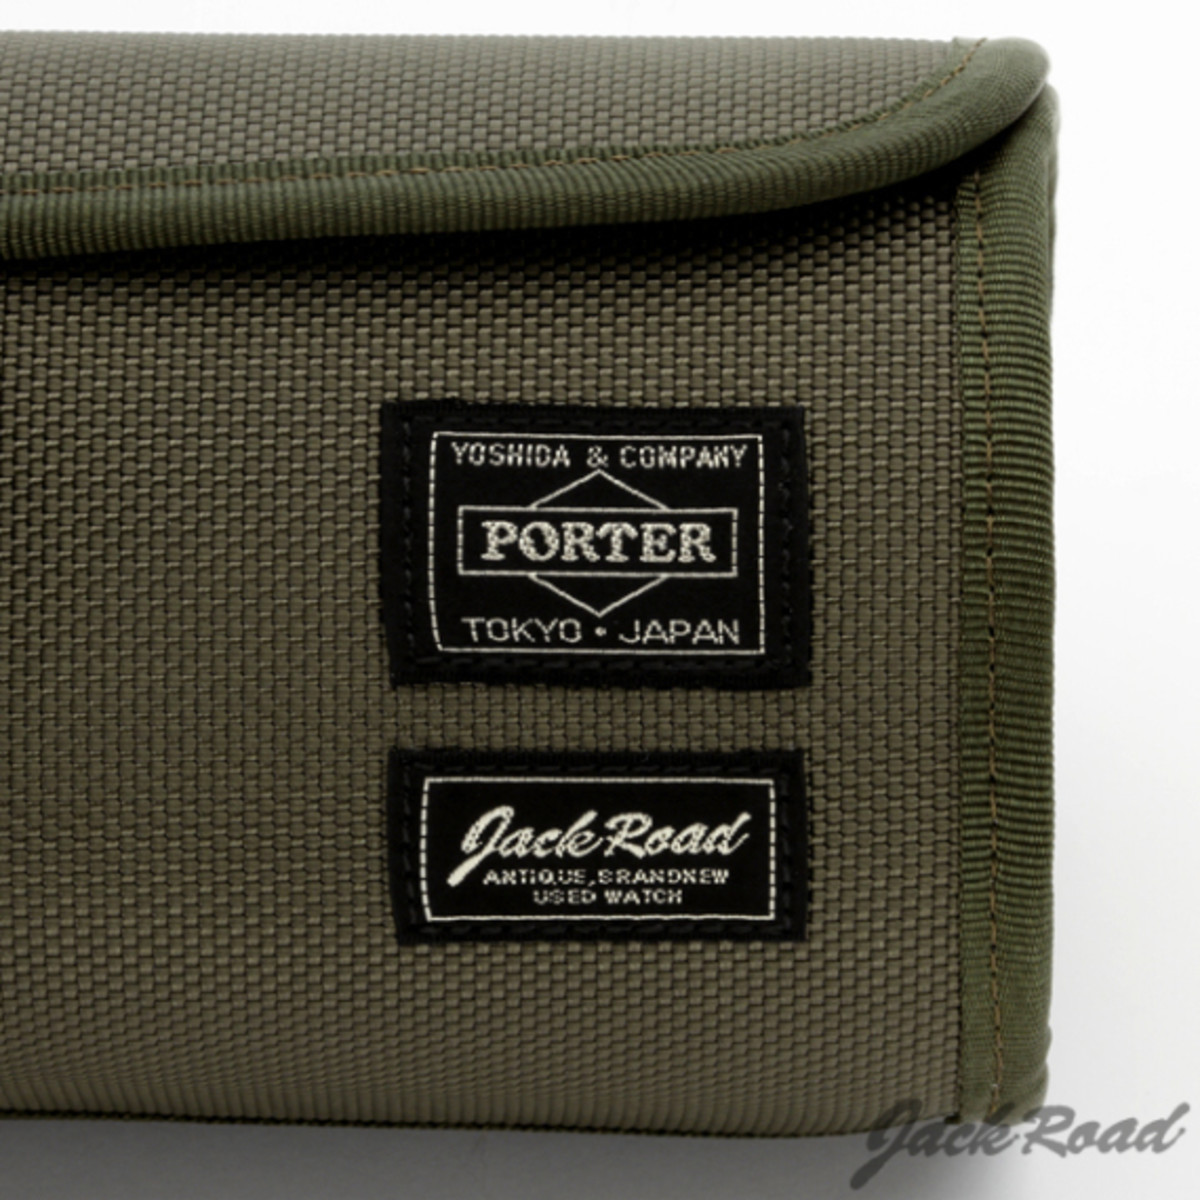 jack-road-porter-watch-carrying-case-06